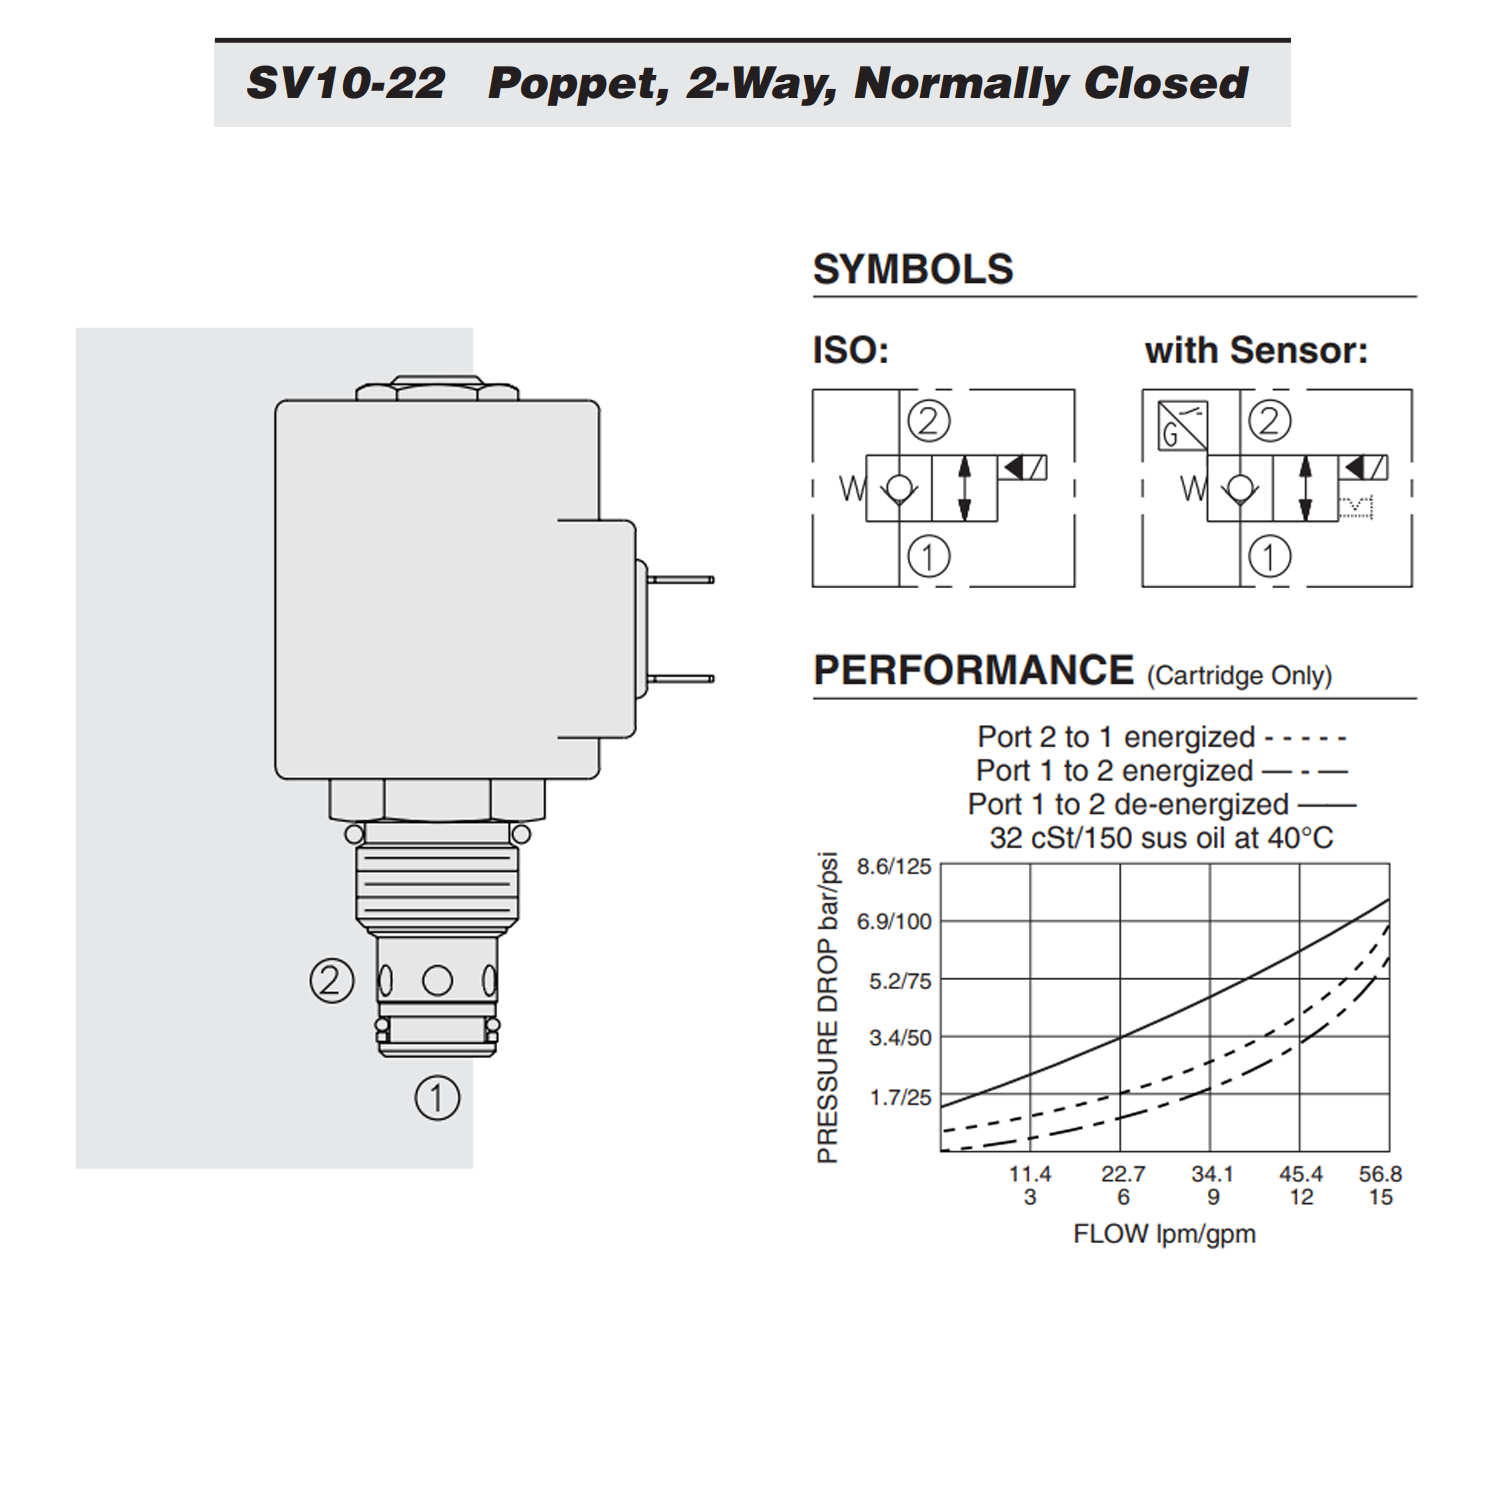 Flow Forces On Poppet Valves: Hydraforce SV10-22-0-N-00 Solenoid Poppet Cartridge Valve